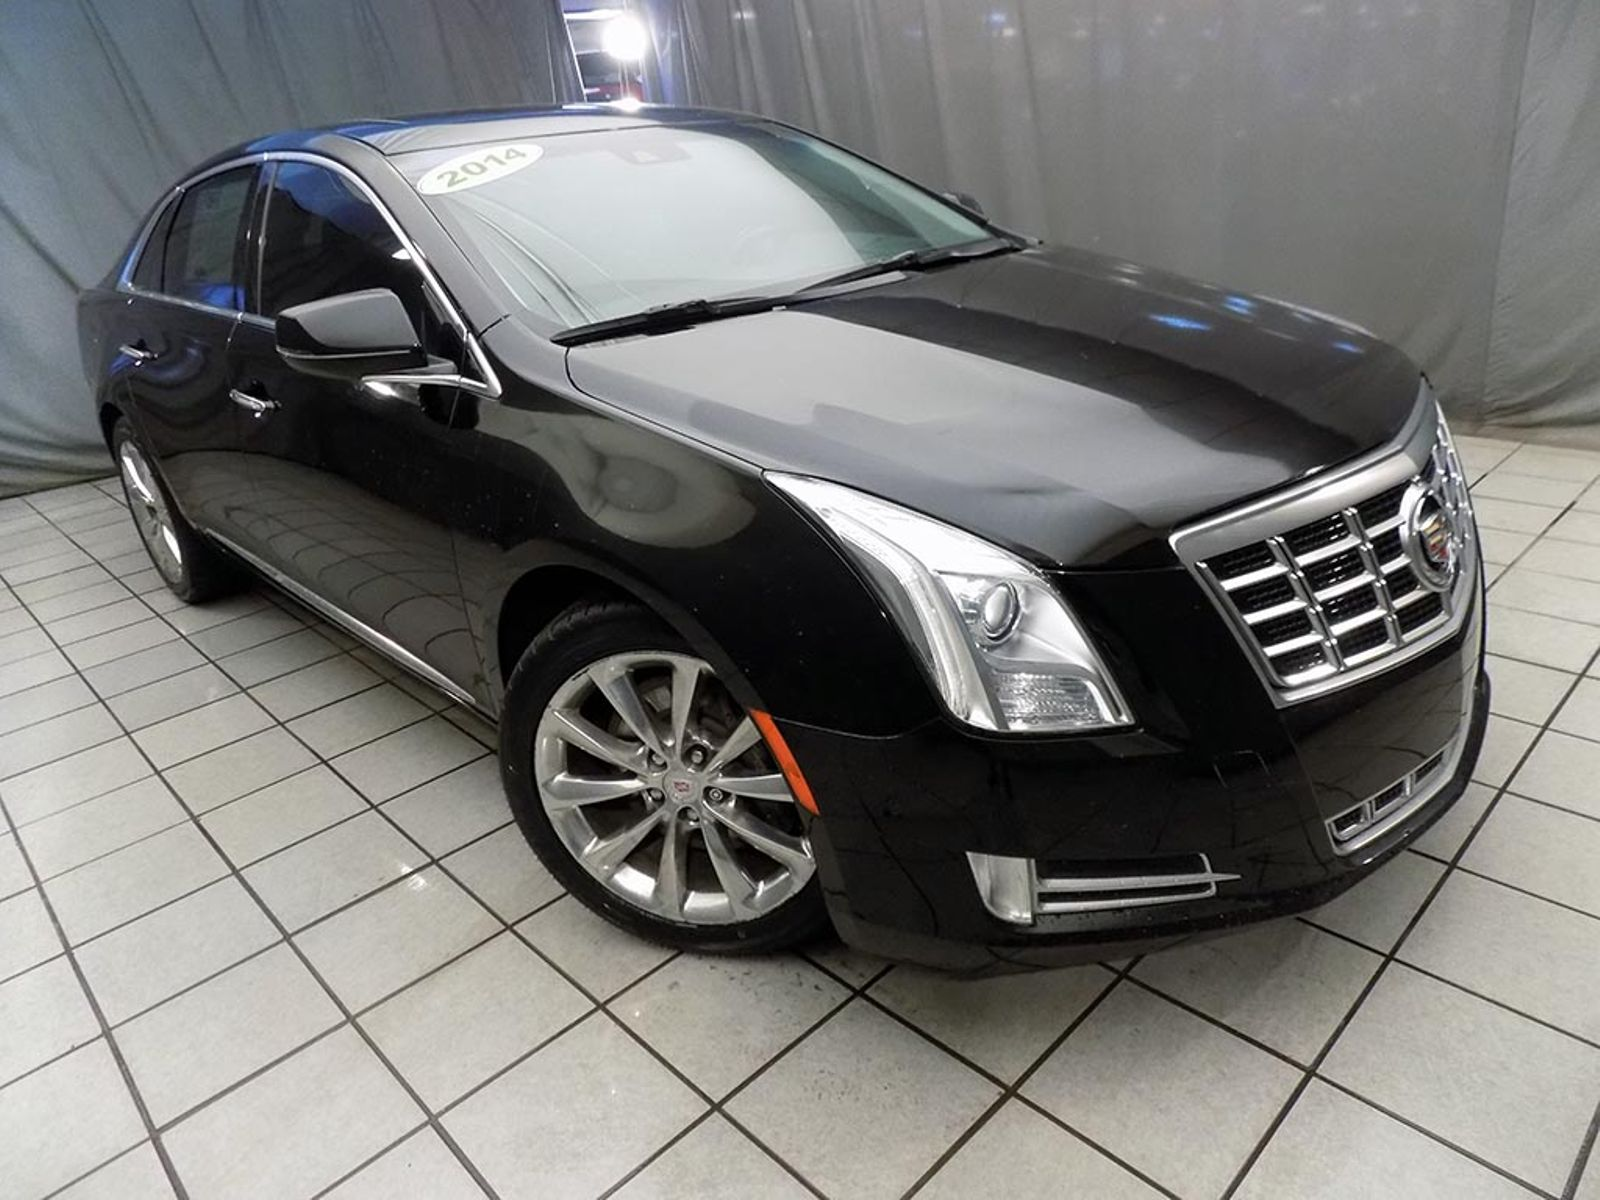 jun en power cadillac twin pages news content packs vehicles turbo xts detail us media